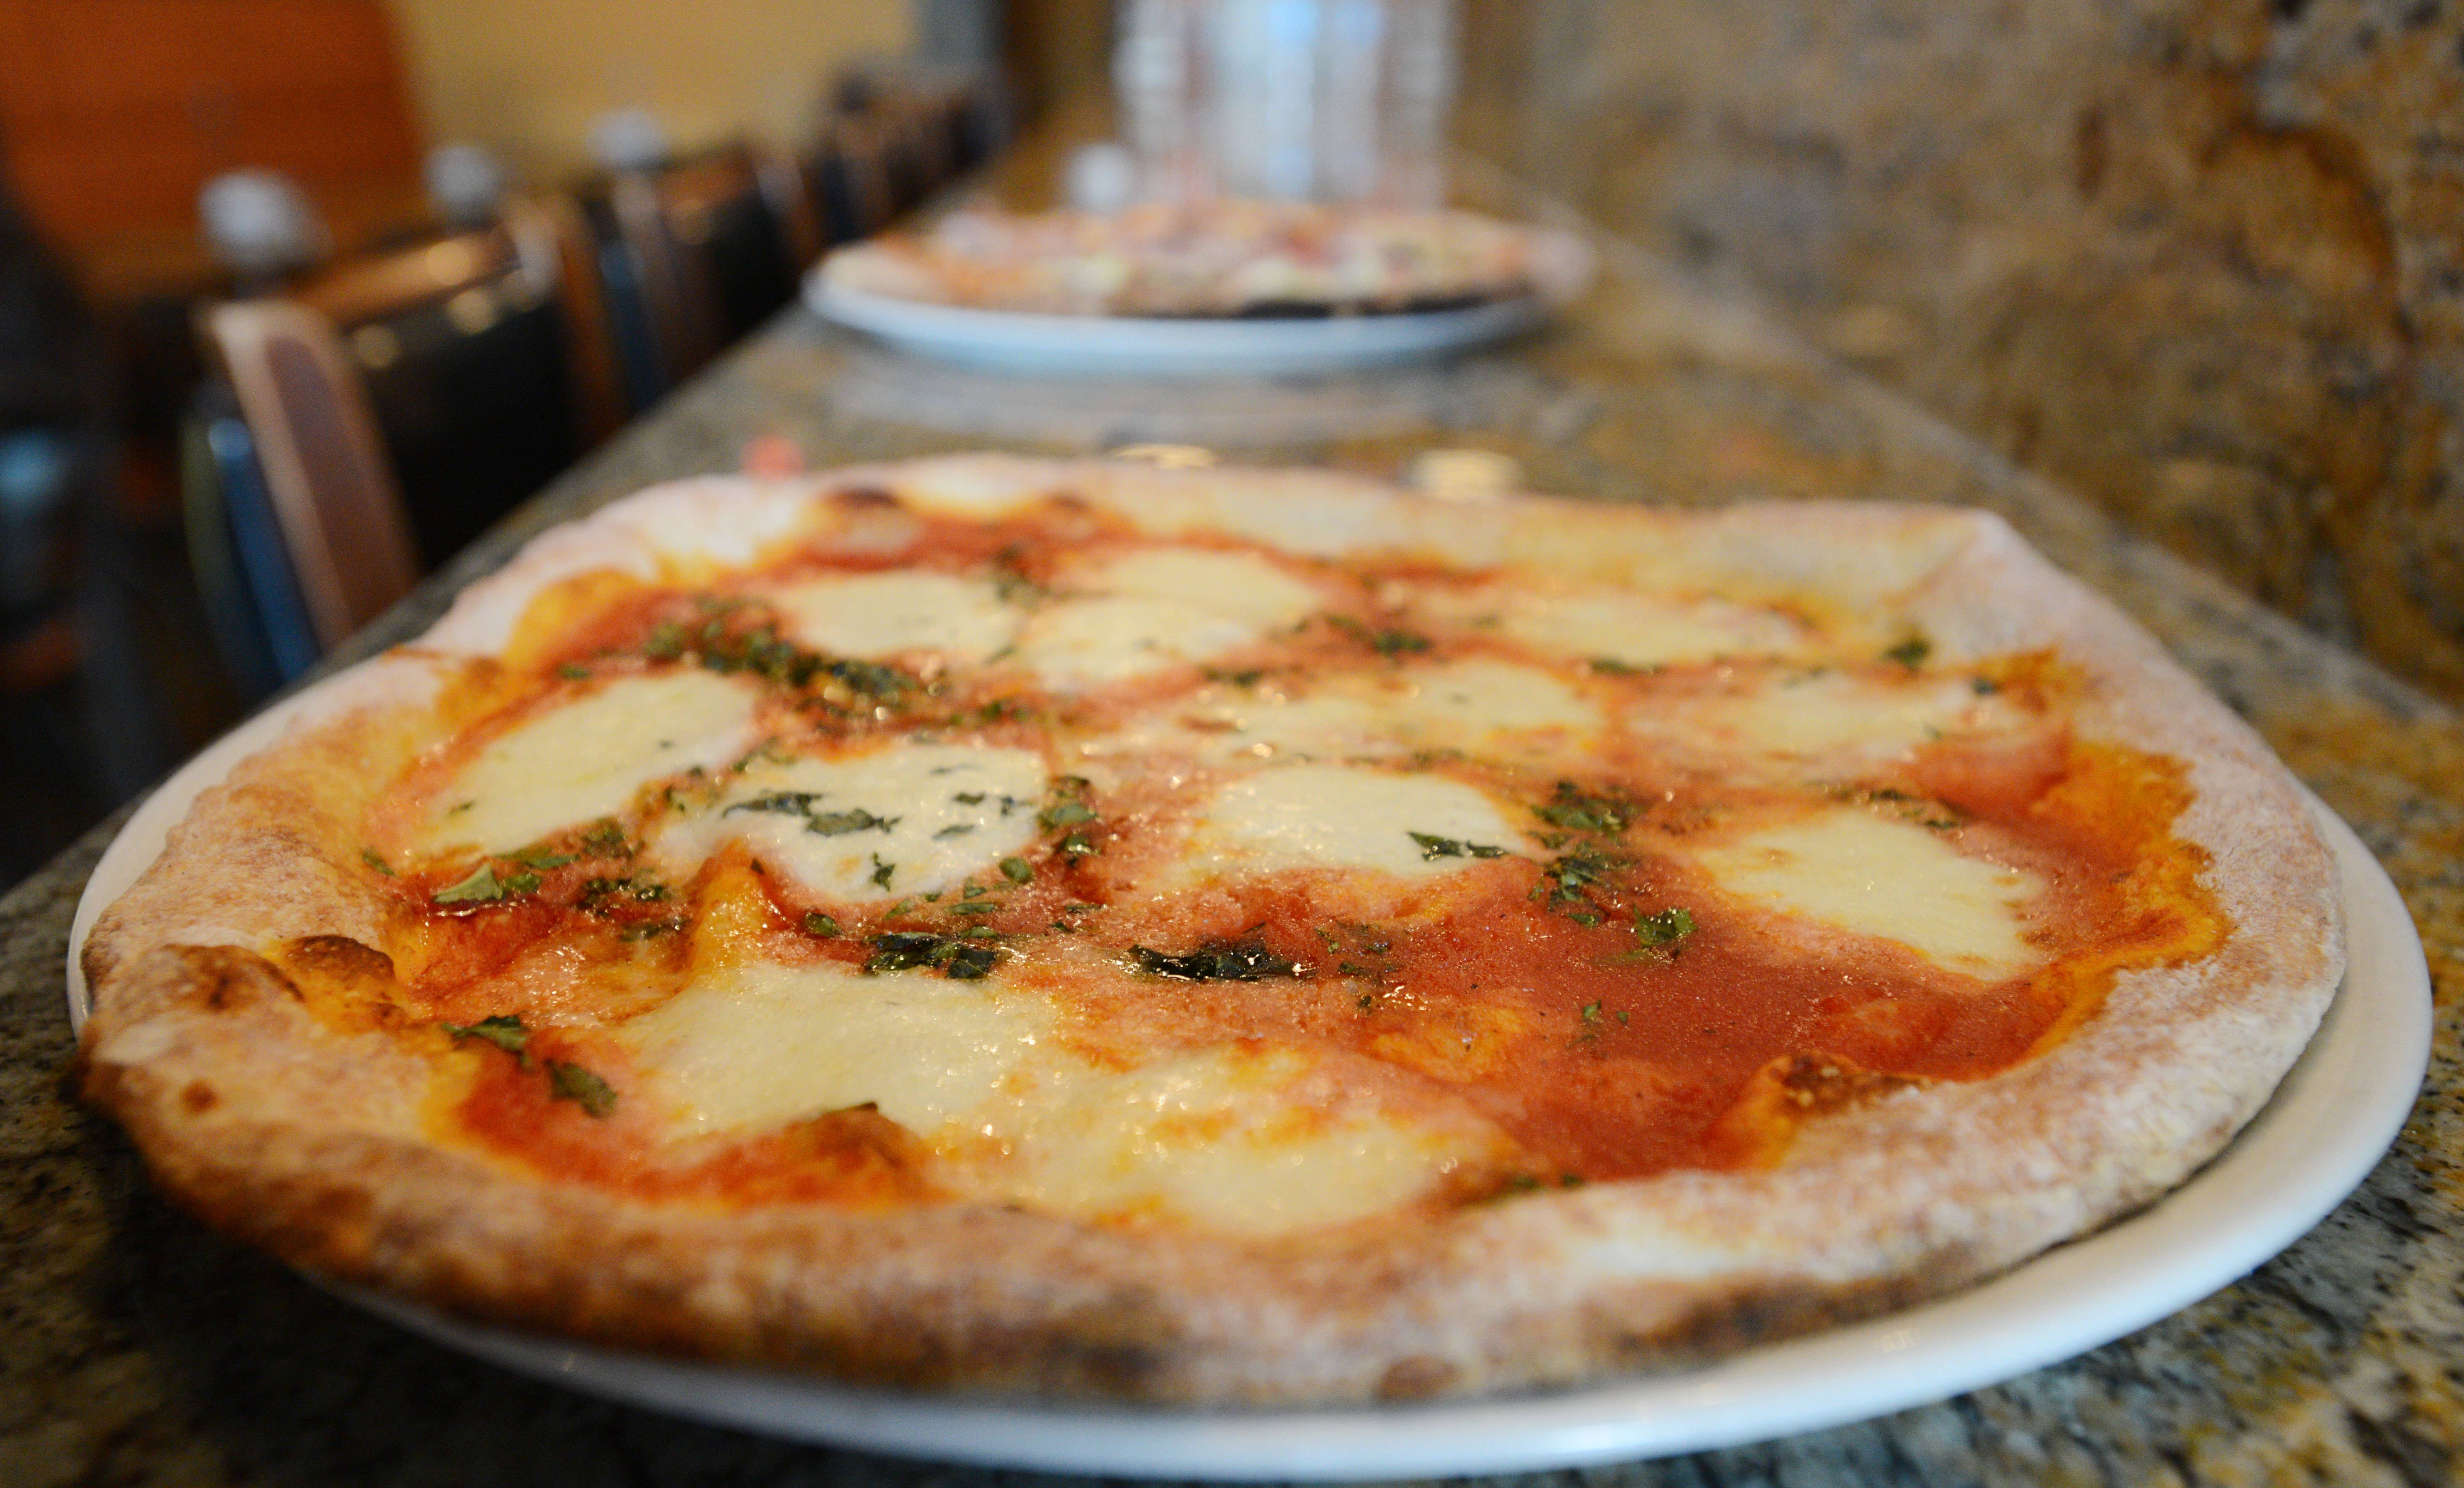 Pizzas from the traditional -- like this Margherita pie -- to more exotic versions with salmon and capers are on the menu at Elio's Pizza on Fire.